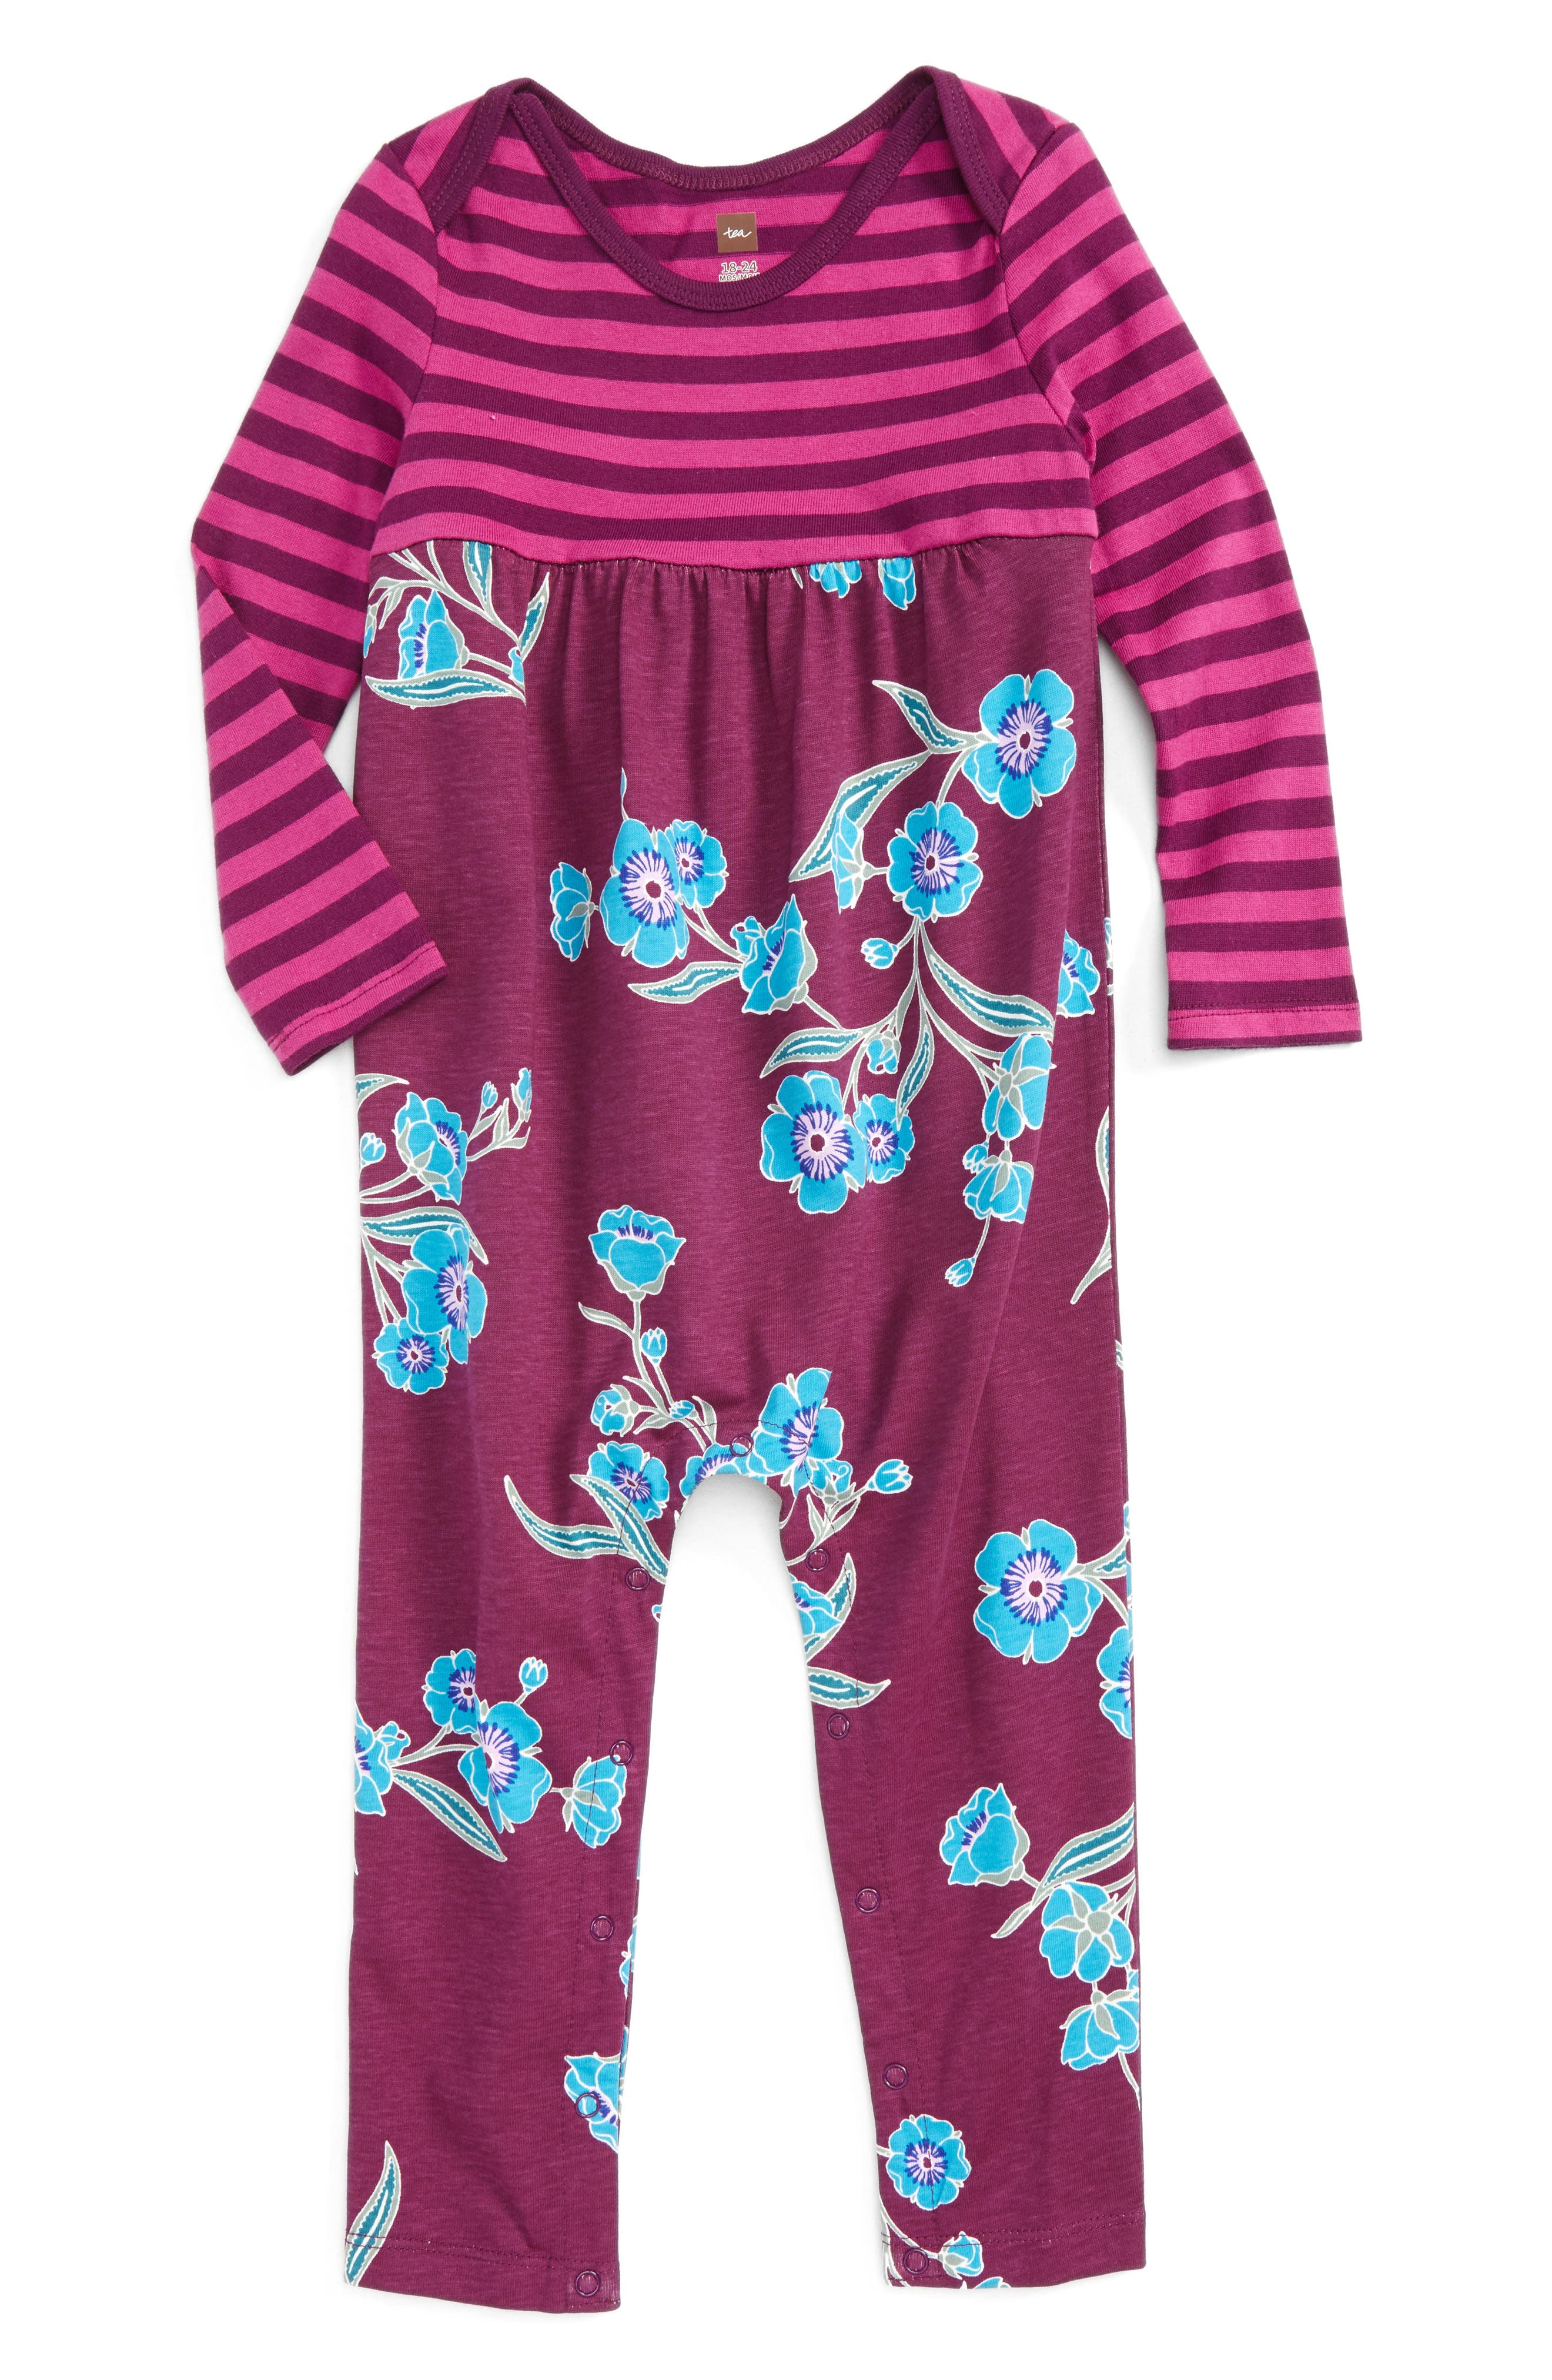 Alternate Image 1 Selected - Tea Collection Marjorie Romper (Baby Girls)